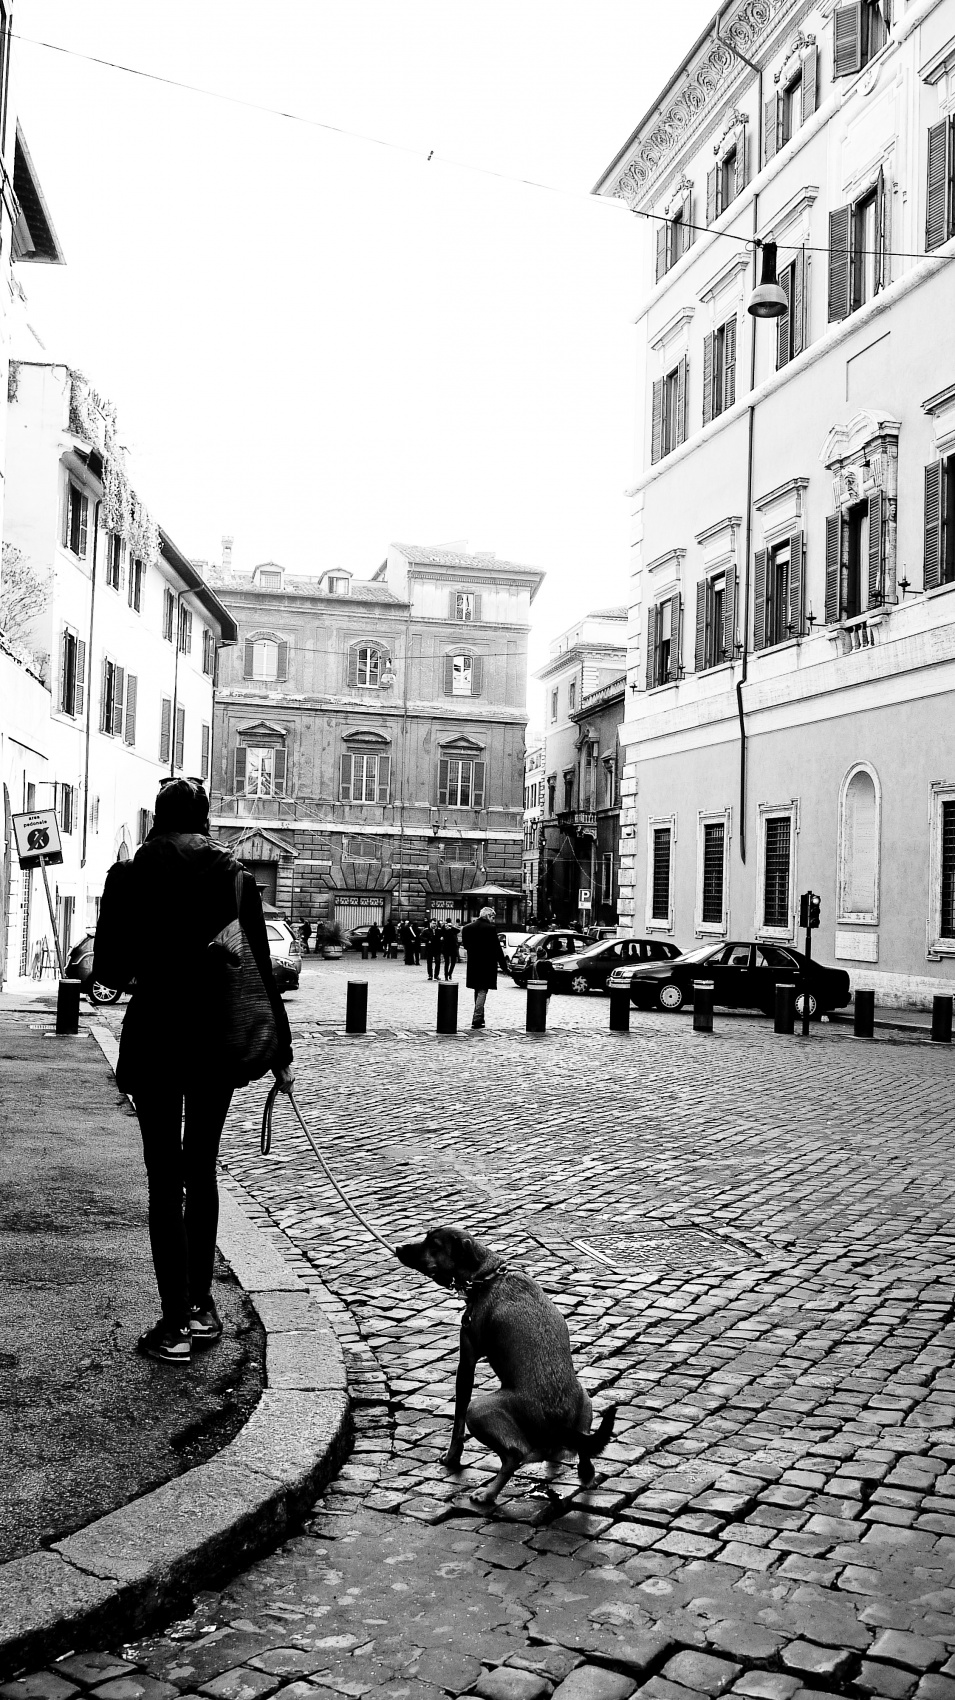 Caught In Time - Streets of Rome